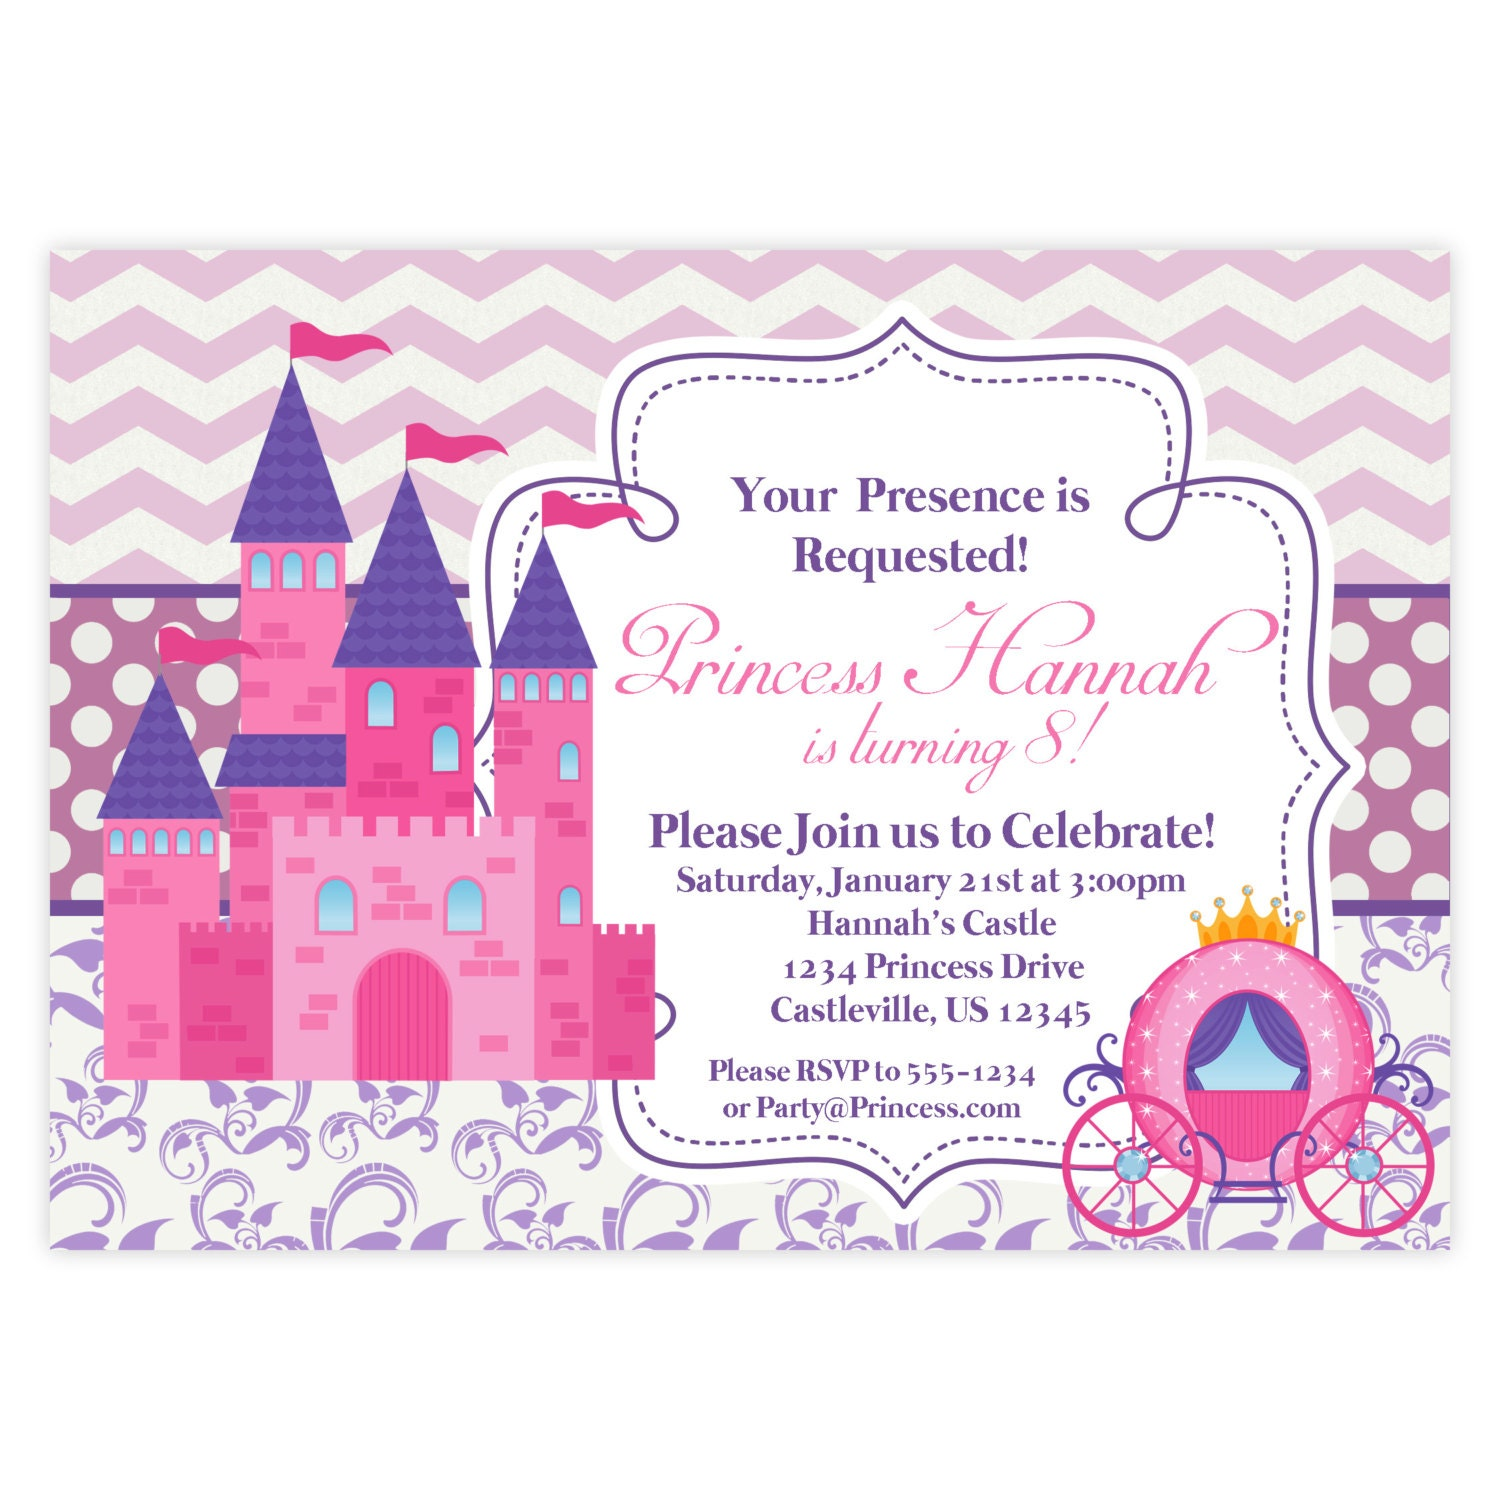 Princess Invitation Retro Pink Chevron Purple Damask Royal - Princess birthday invitation templates free